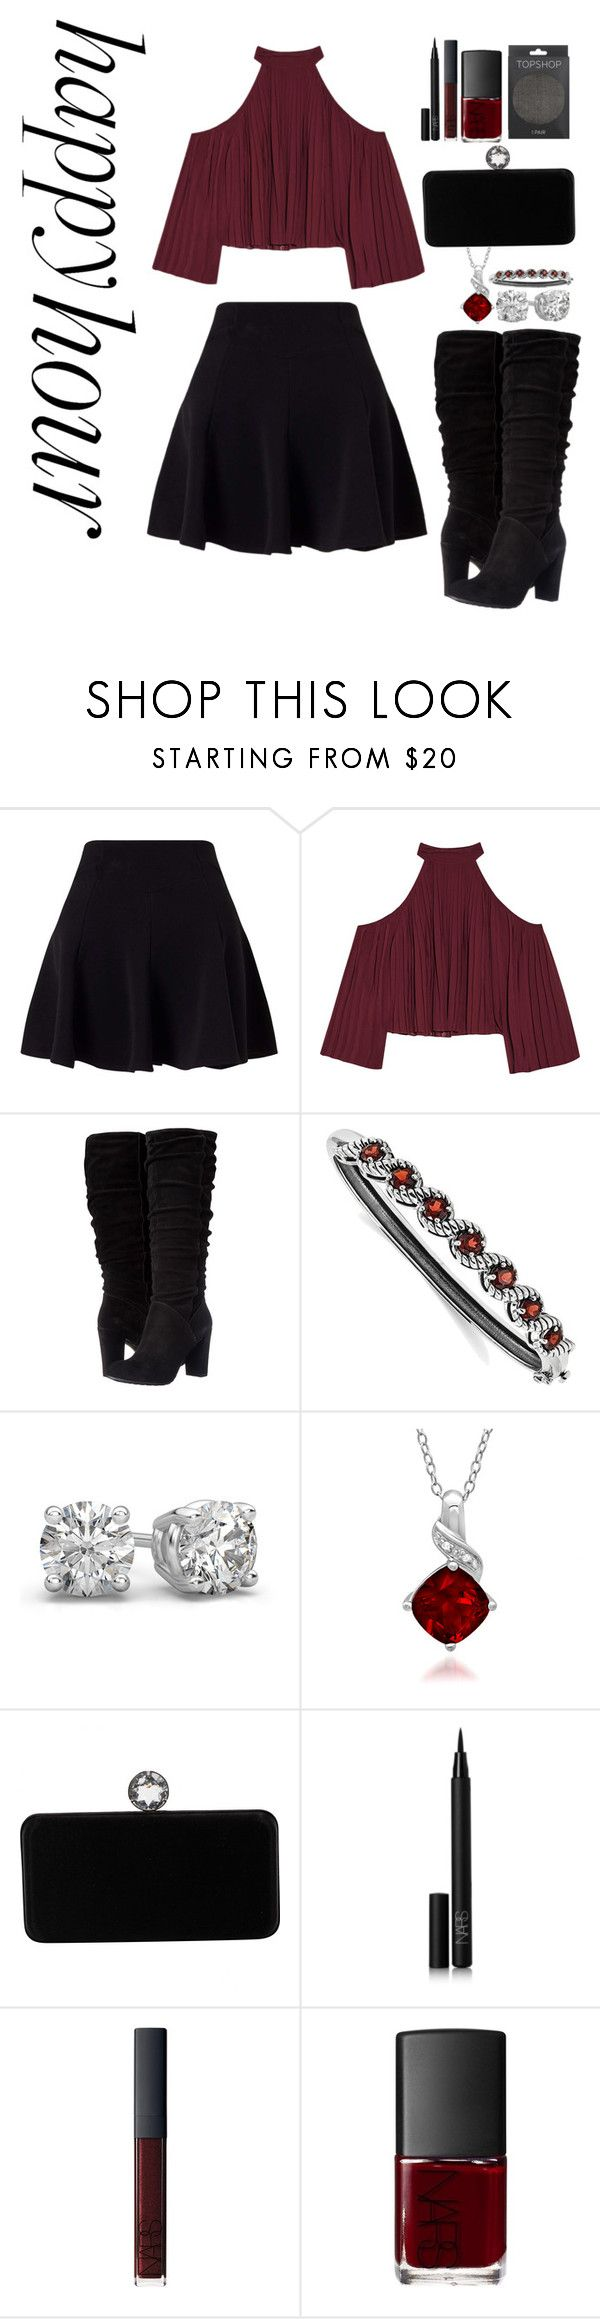 """""""Crimson Mistress"""" by mias-angels on Polyvore featuring Miss Selfridge, W118 by Walter Baker, Nine West, BillyTheTree, Amanda Rose Collection, Swarovski, NARS Cosmetics and Topshop"""